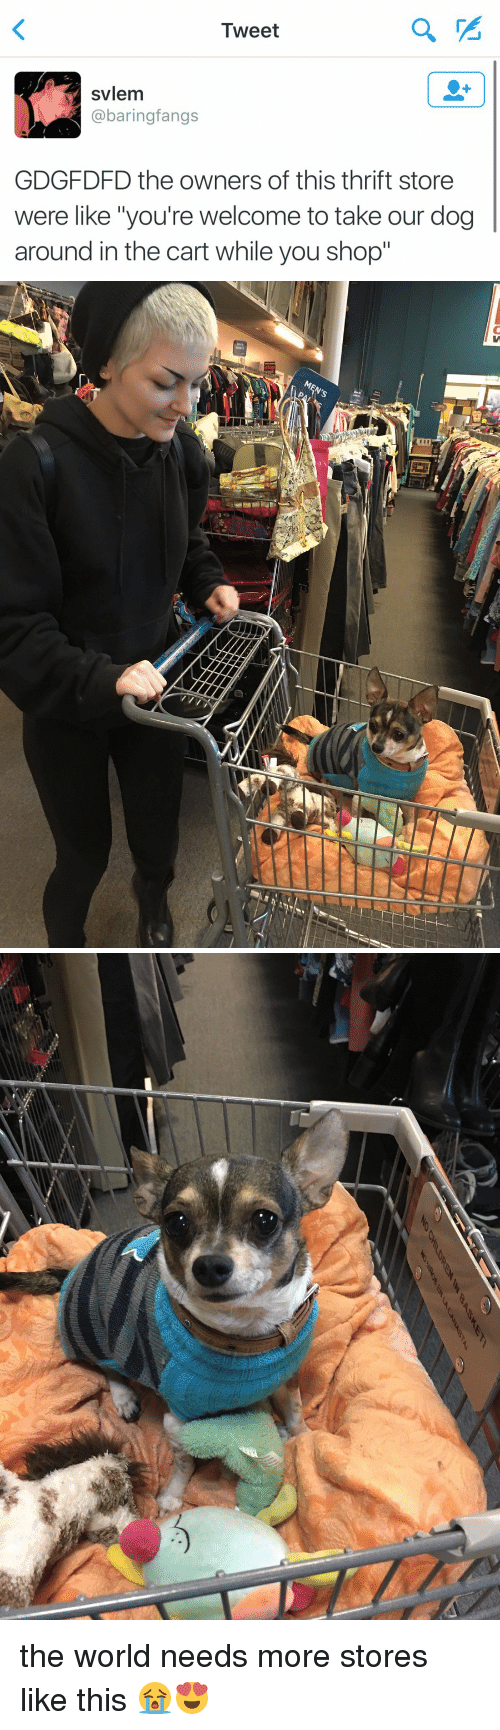 "Youre Welcom: Tweet  svlem  @baring fangs  GDGFDFD the owners of this thrift store  were like ""you're welcome to take our dog  around in the cart while you shop""   EI   NO NaN the world needs more stores like this 😭😍"